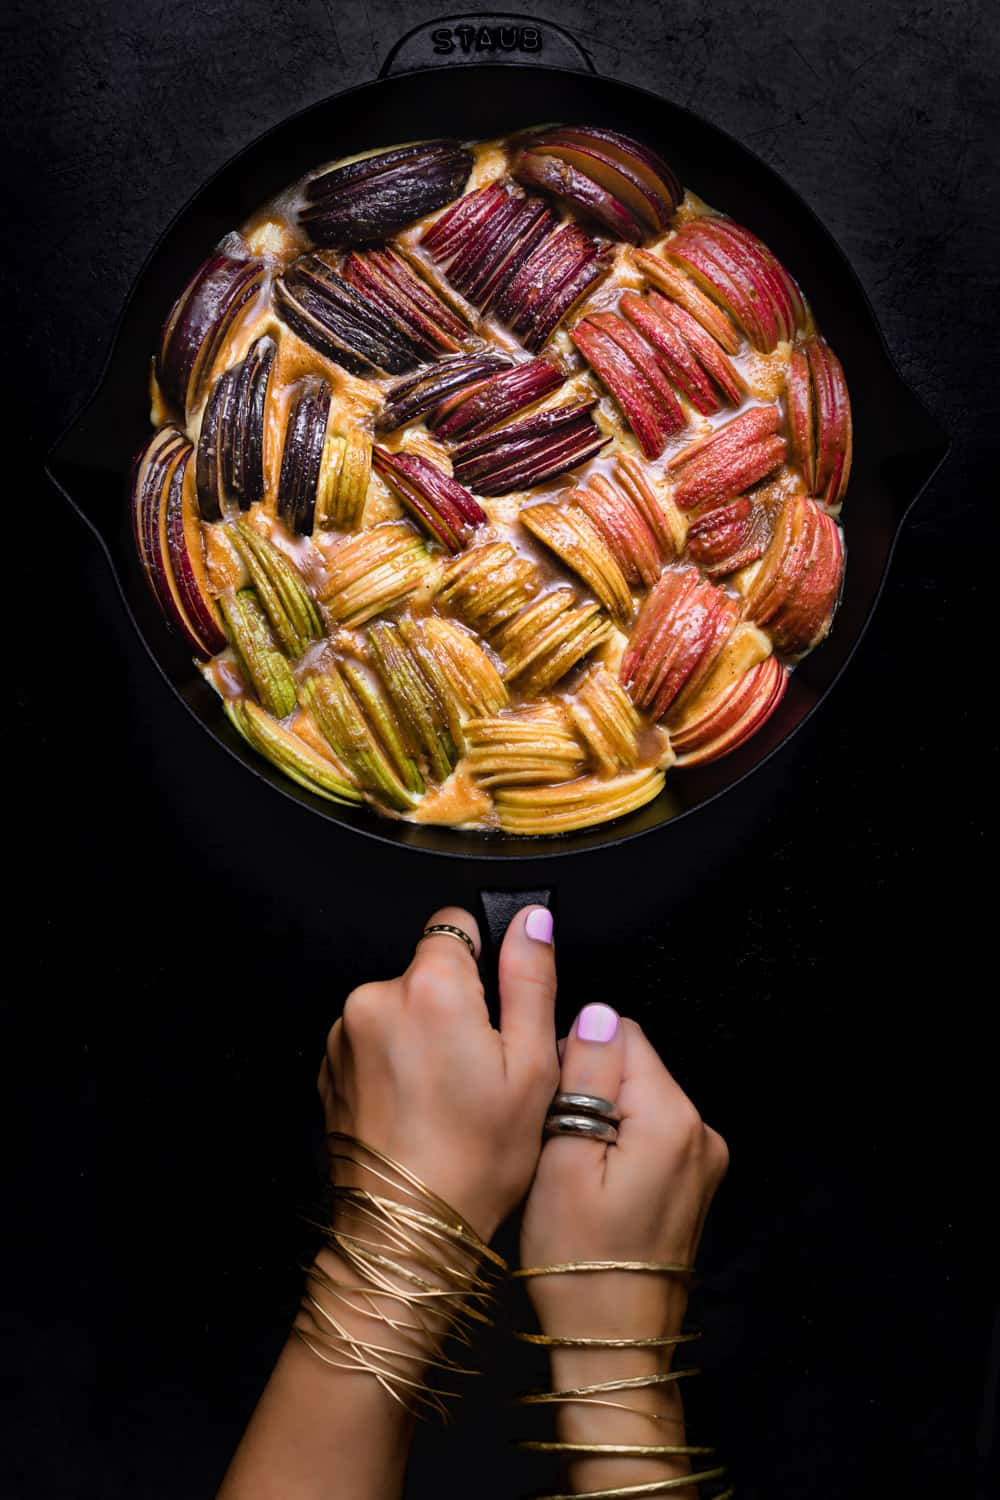 Daniela Gerson holding an cinnamon-sugar brushed apple cake; pre-oven and overhead shot on a black background.